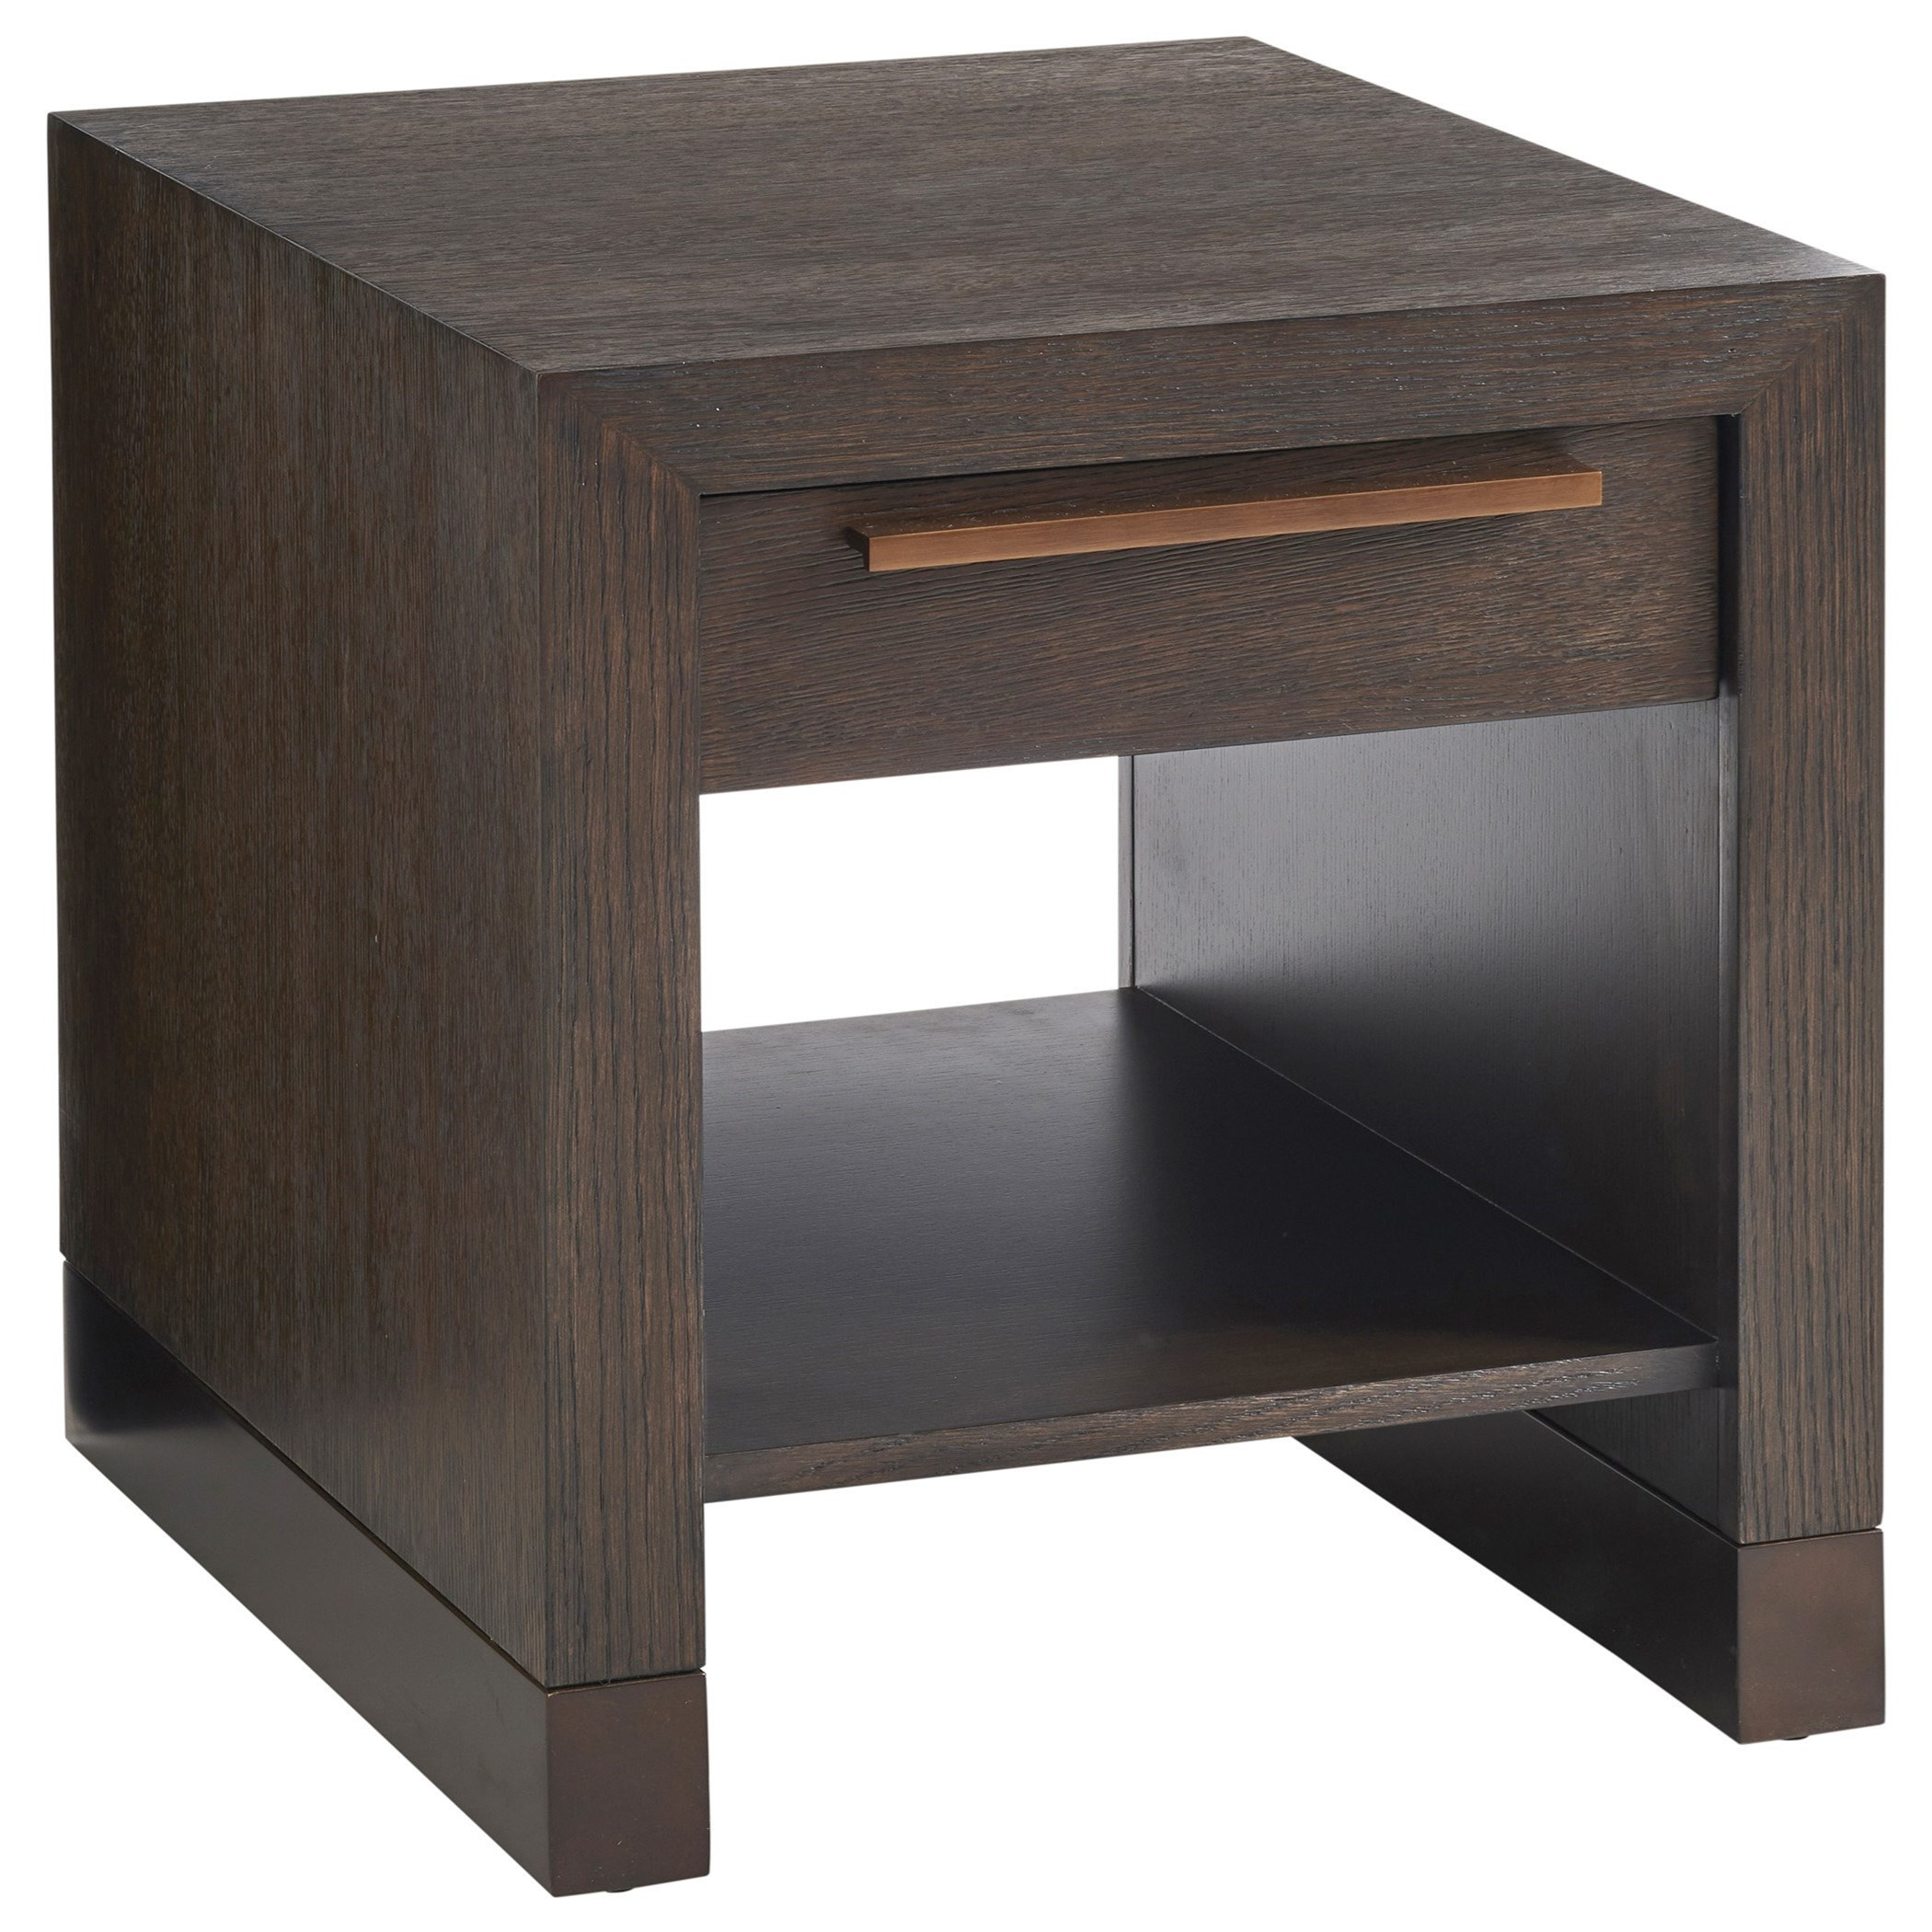 Park City Heber End Table by Barclay Butera at Baer's Furniture